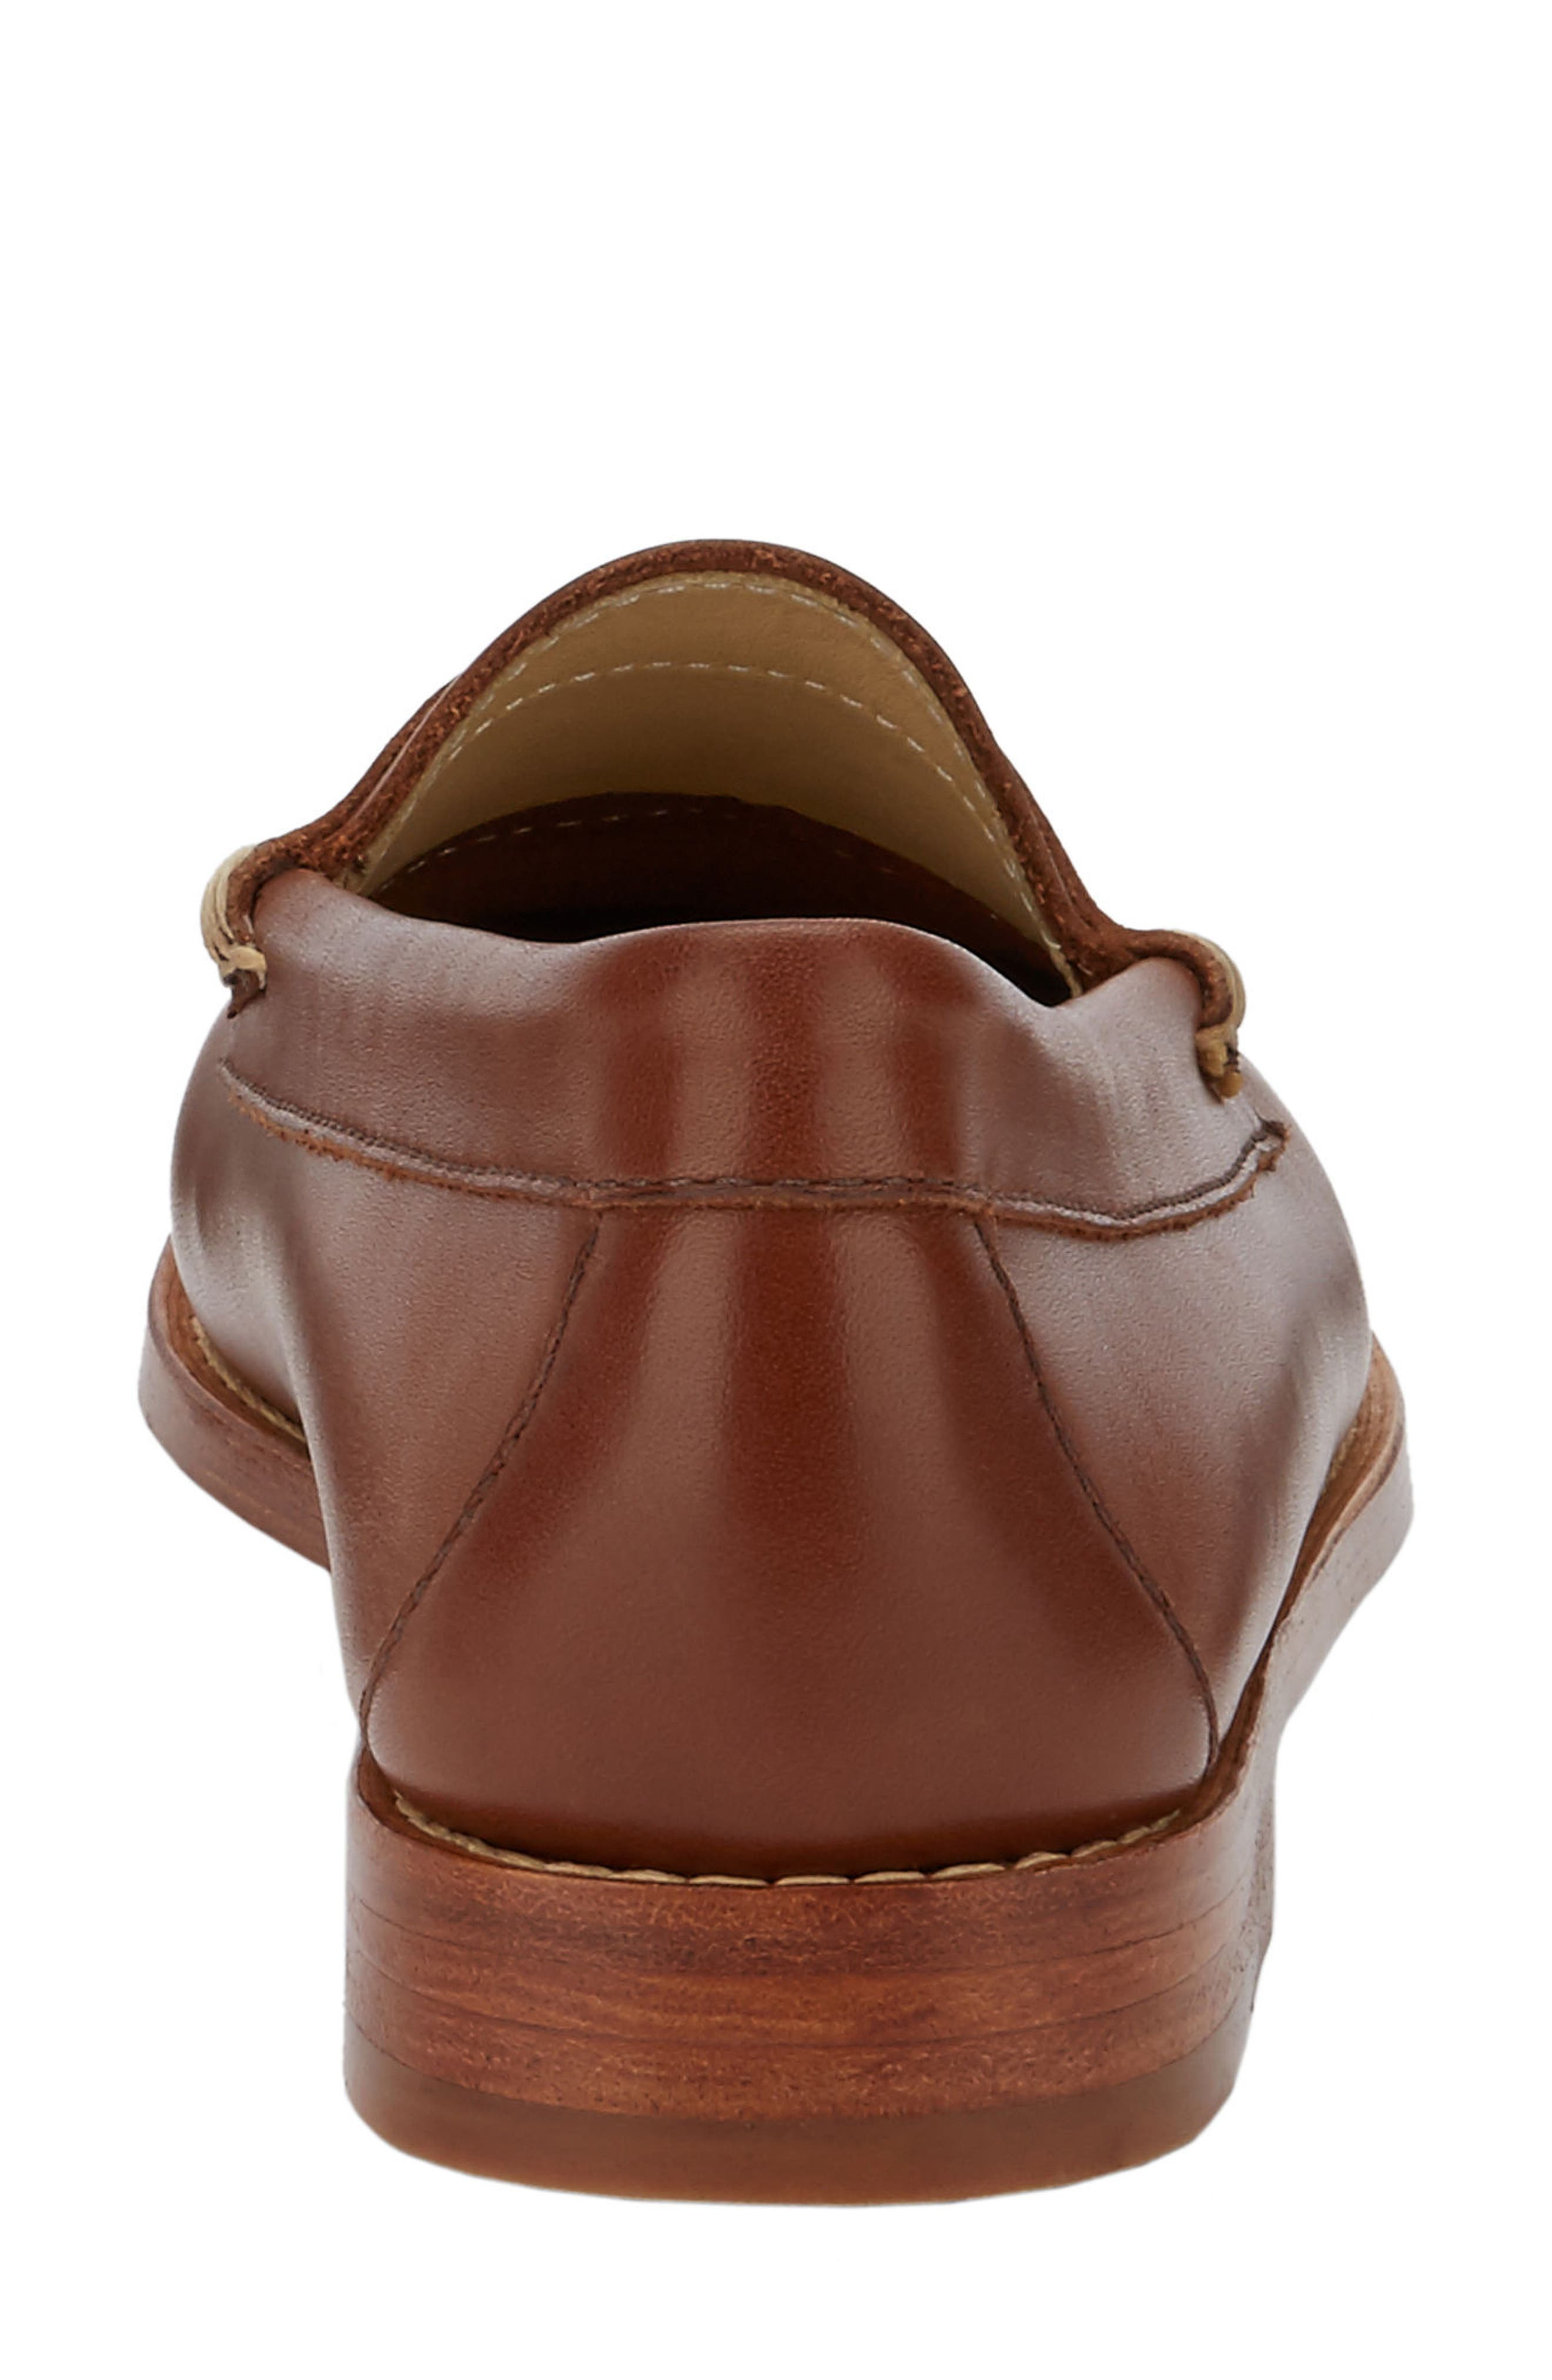 'Whitney' Loafer,                             Alternate thumbnail 5, color,                             COGNAC LEATHER